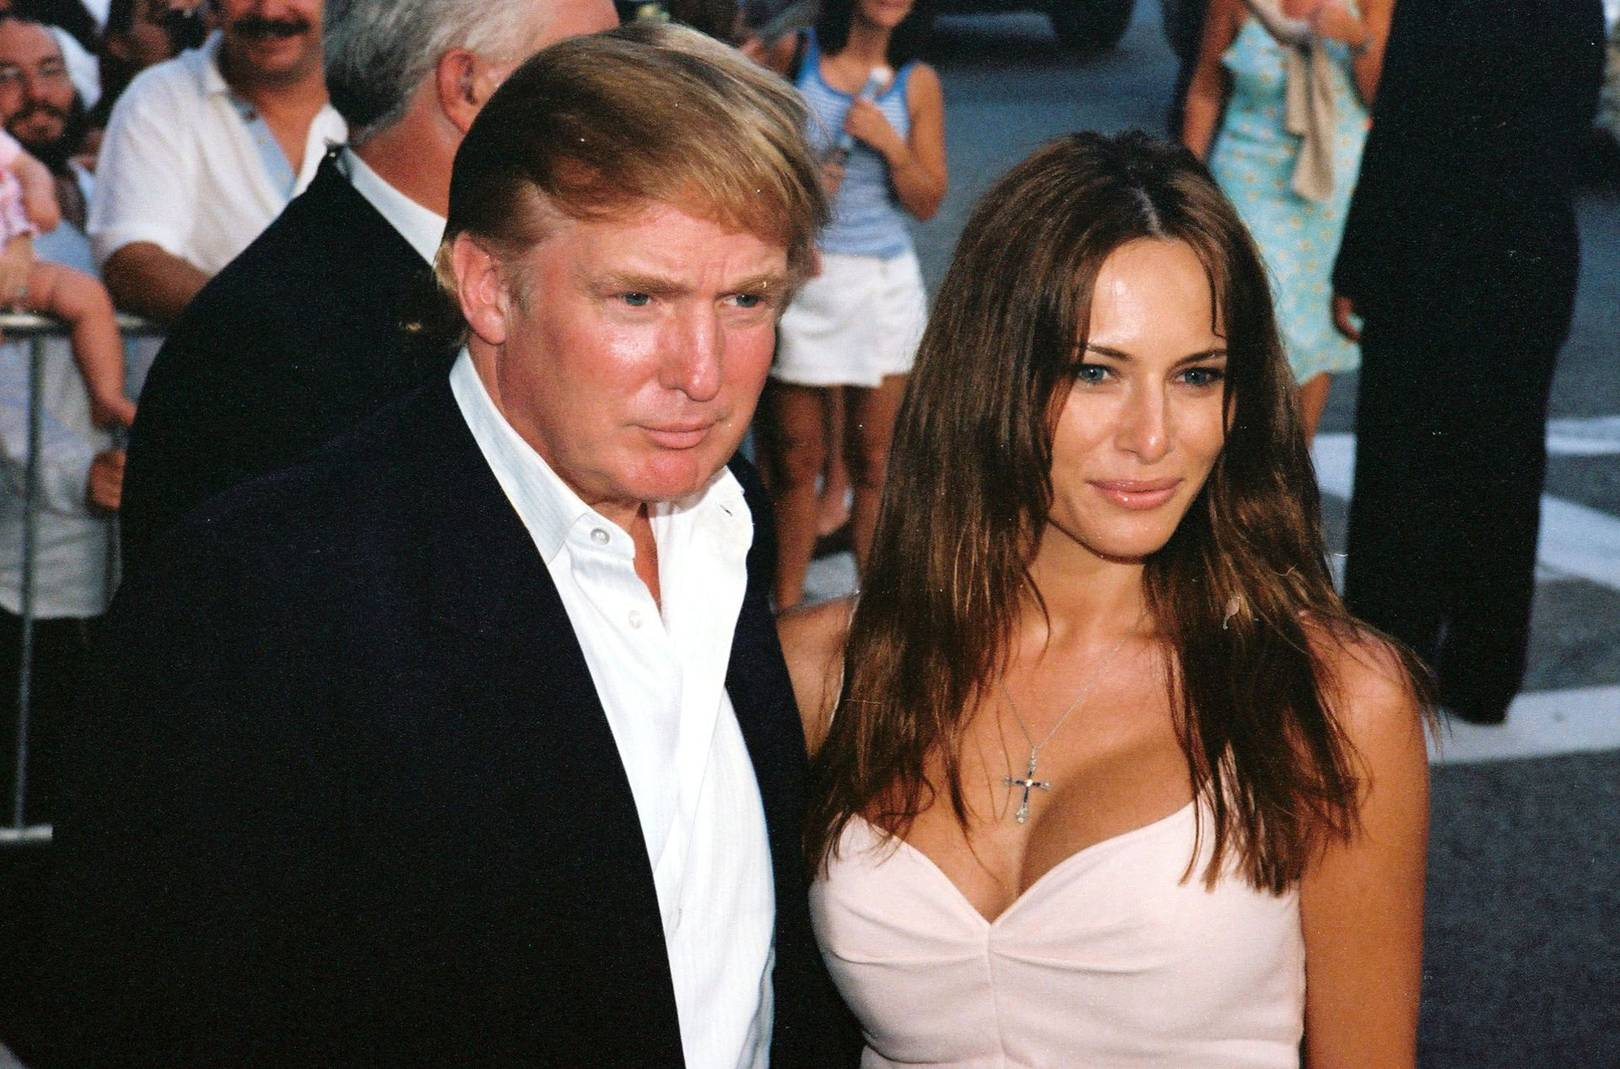 Image result for photo of melania and trump